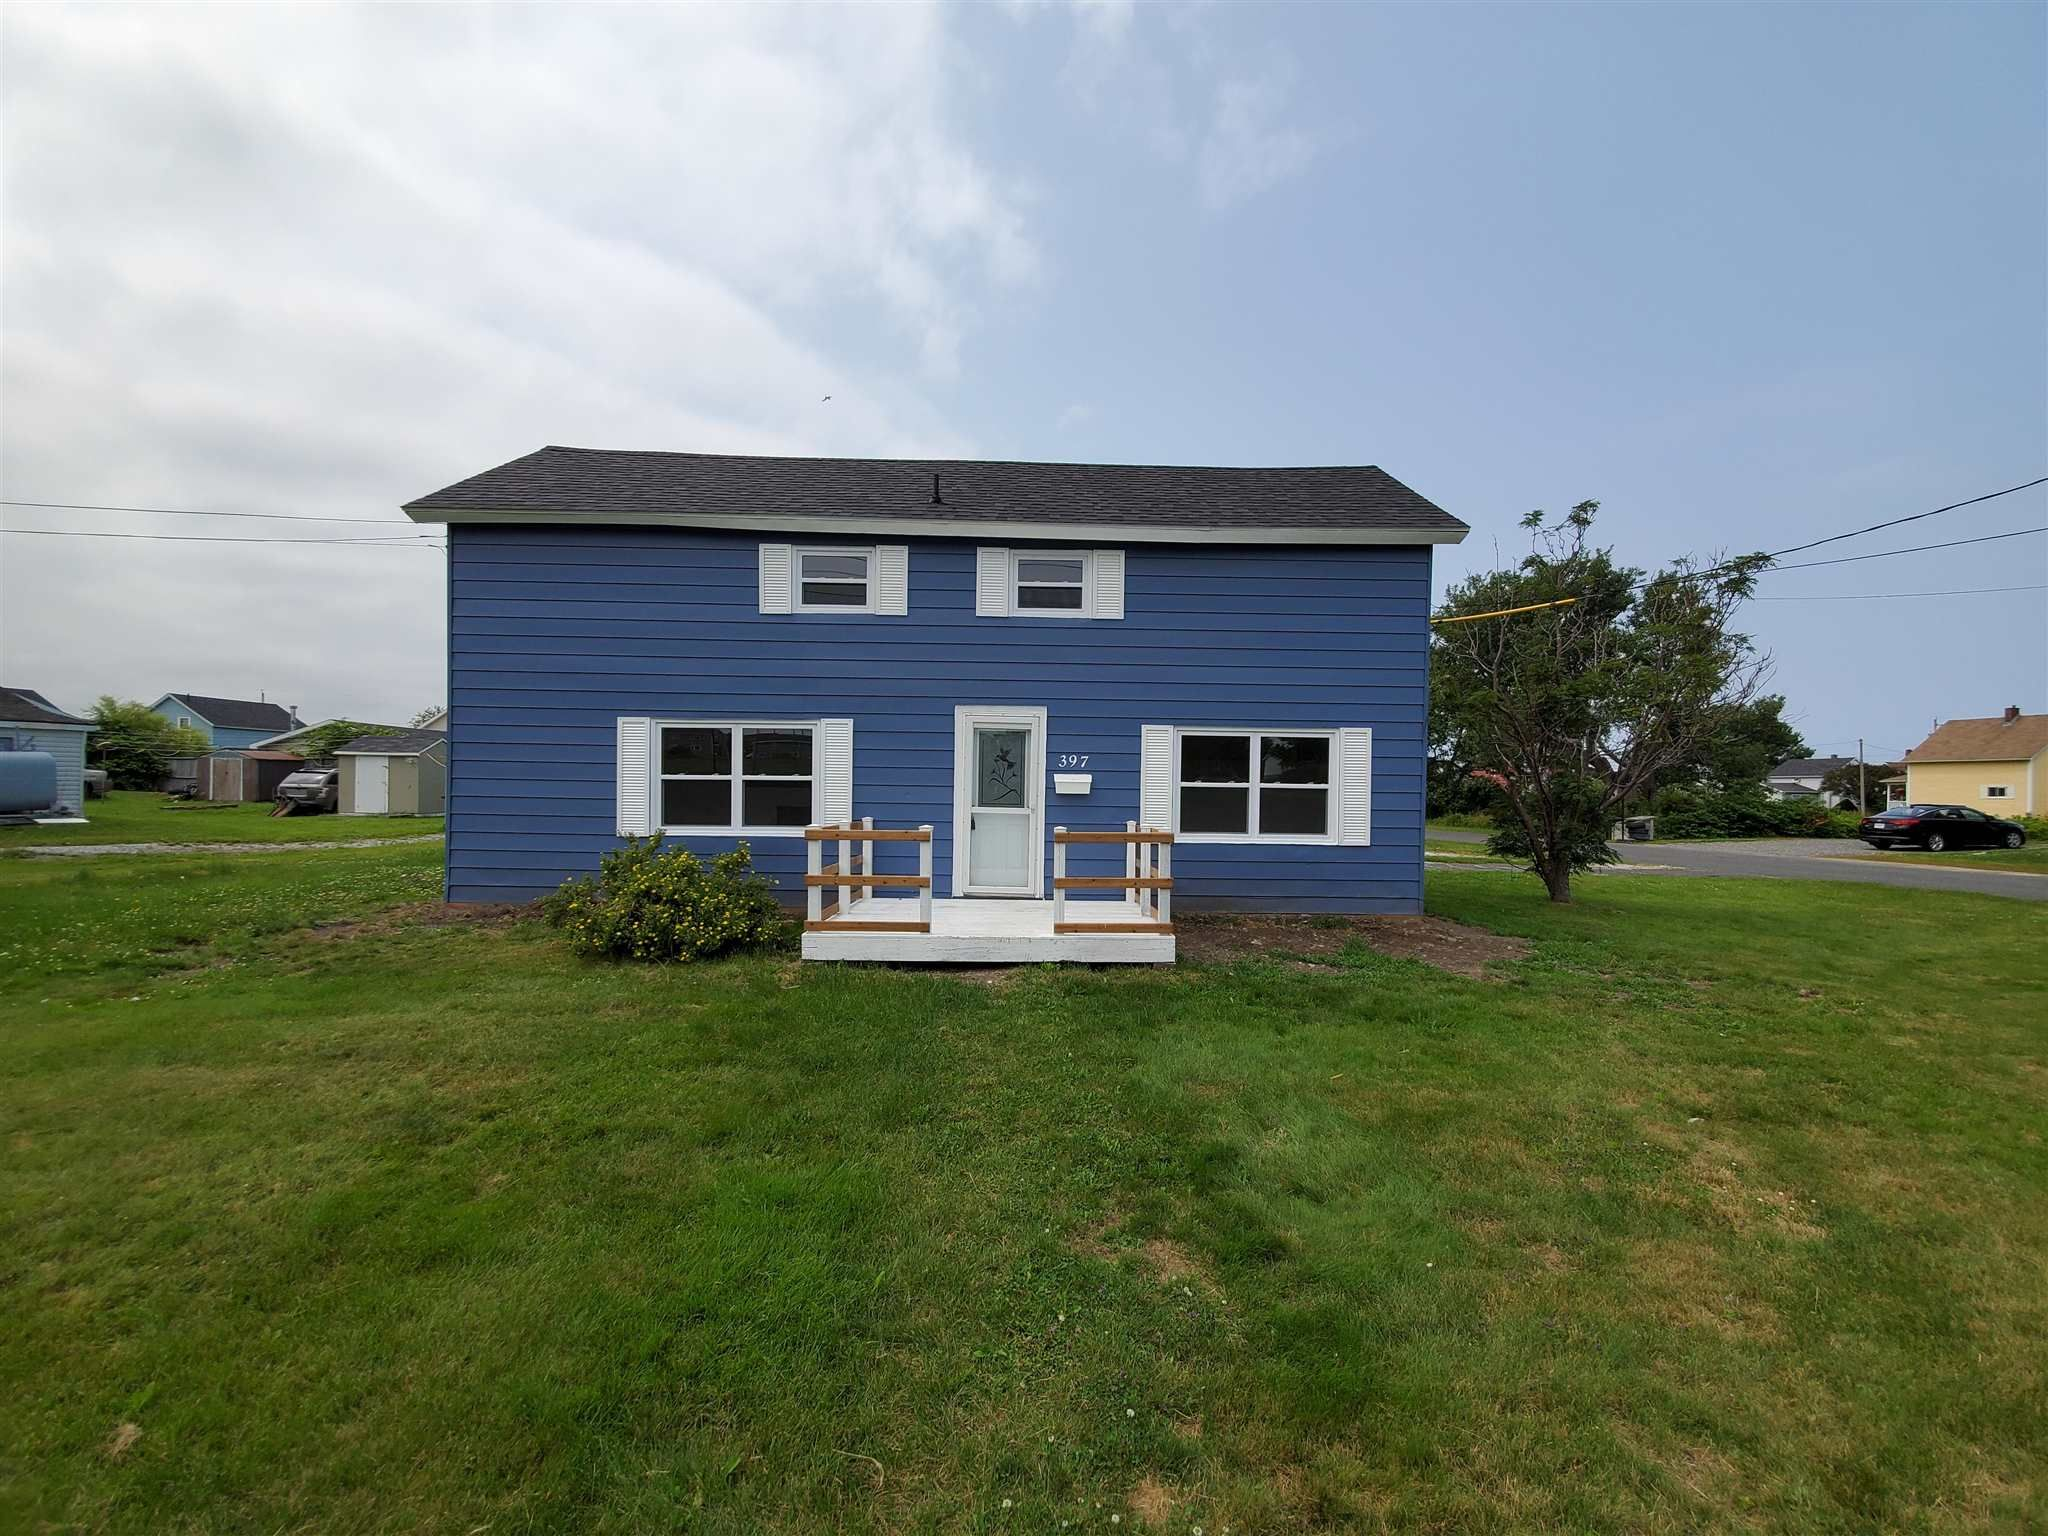 Main Photo: 397 Thirteenth Street in New Waterford: 204-New Waterford Residential for sale (Cape Breton)  : MLS®# 202117416